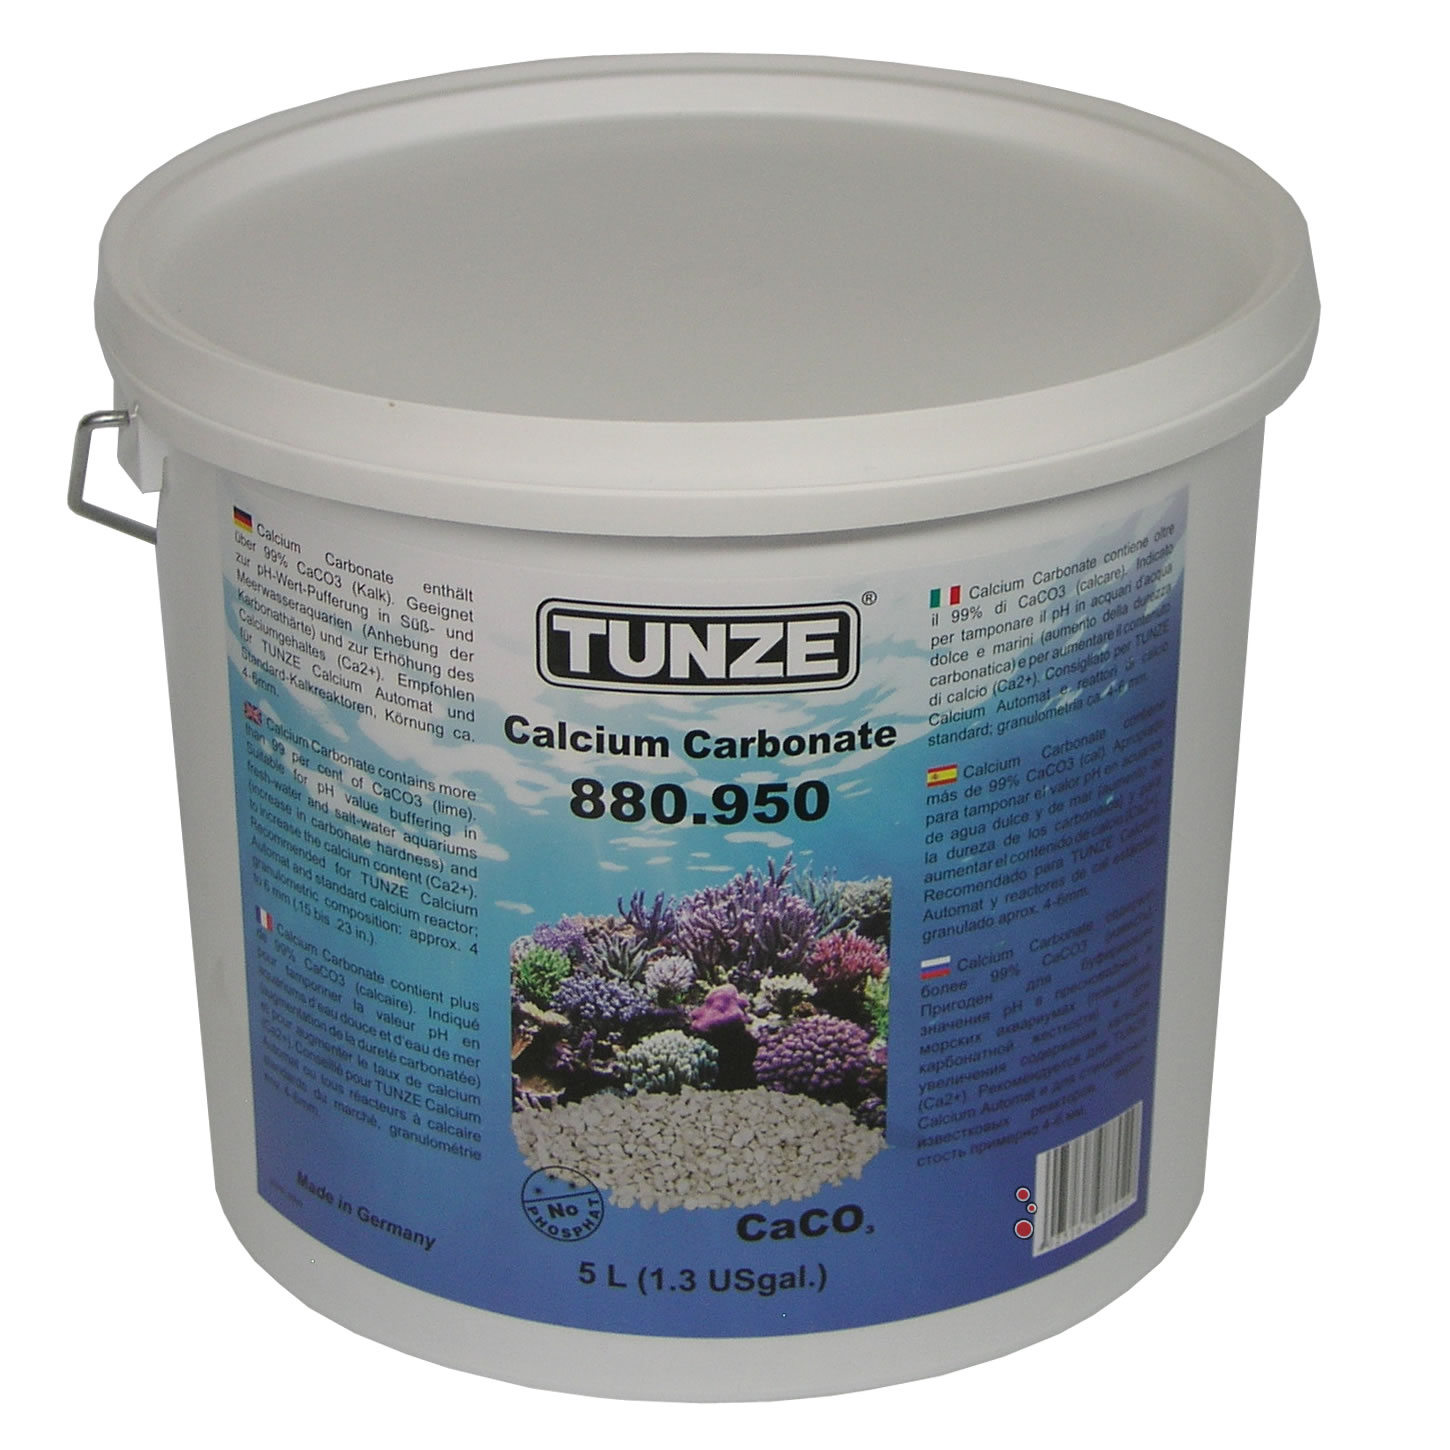 TUNZE Calcium Carbonate